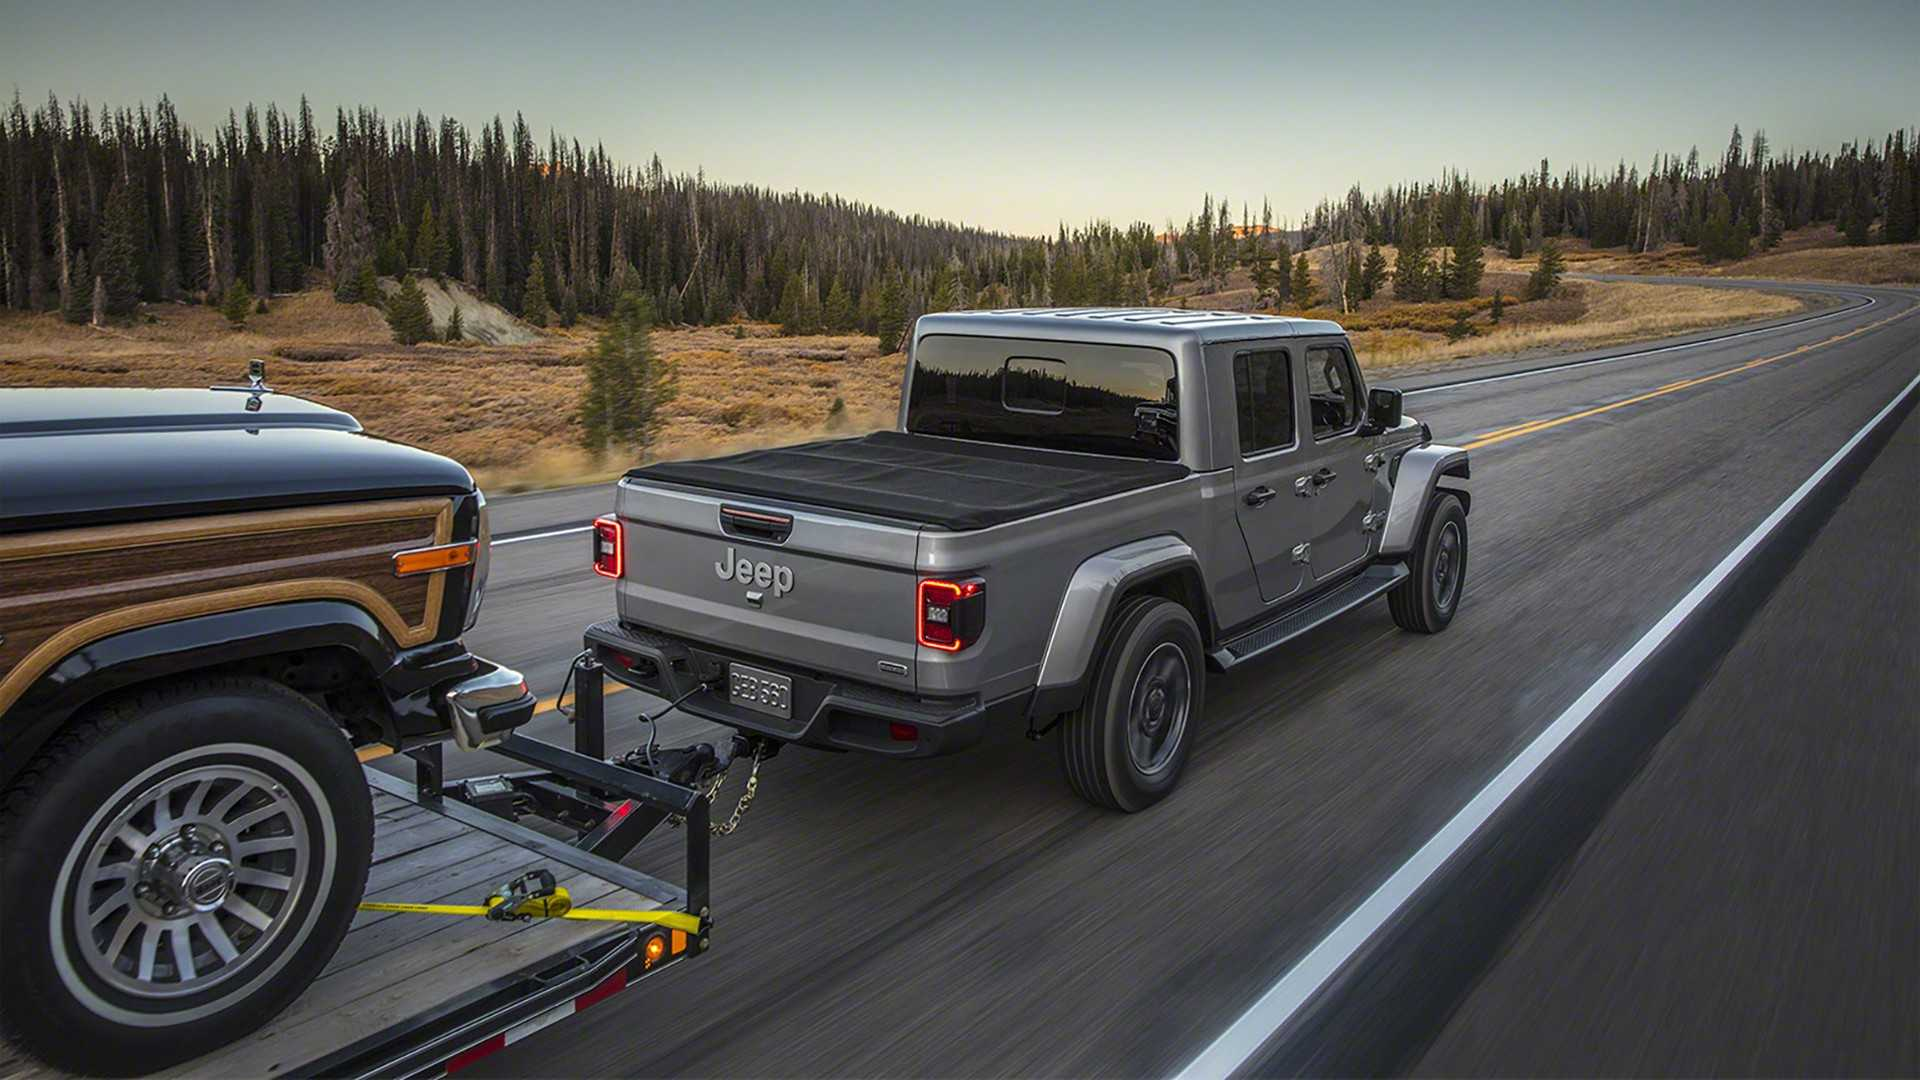 2020-jeep-gladiator-goes-official-with-best-in-class-towing-capacity_51